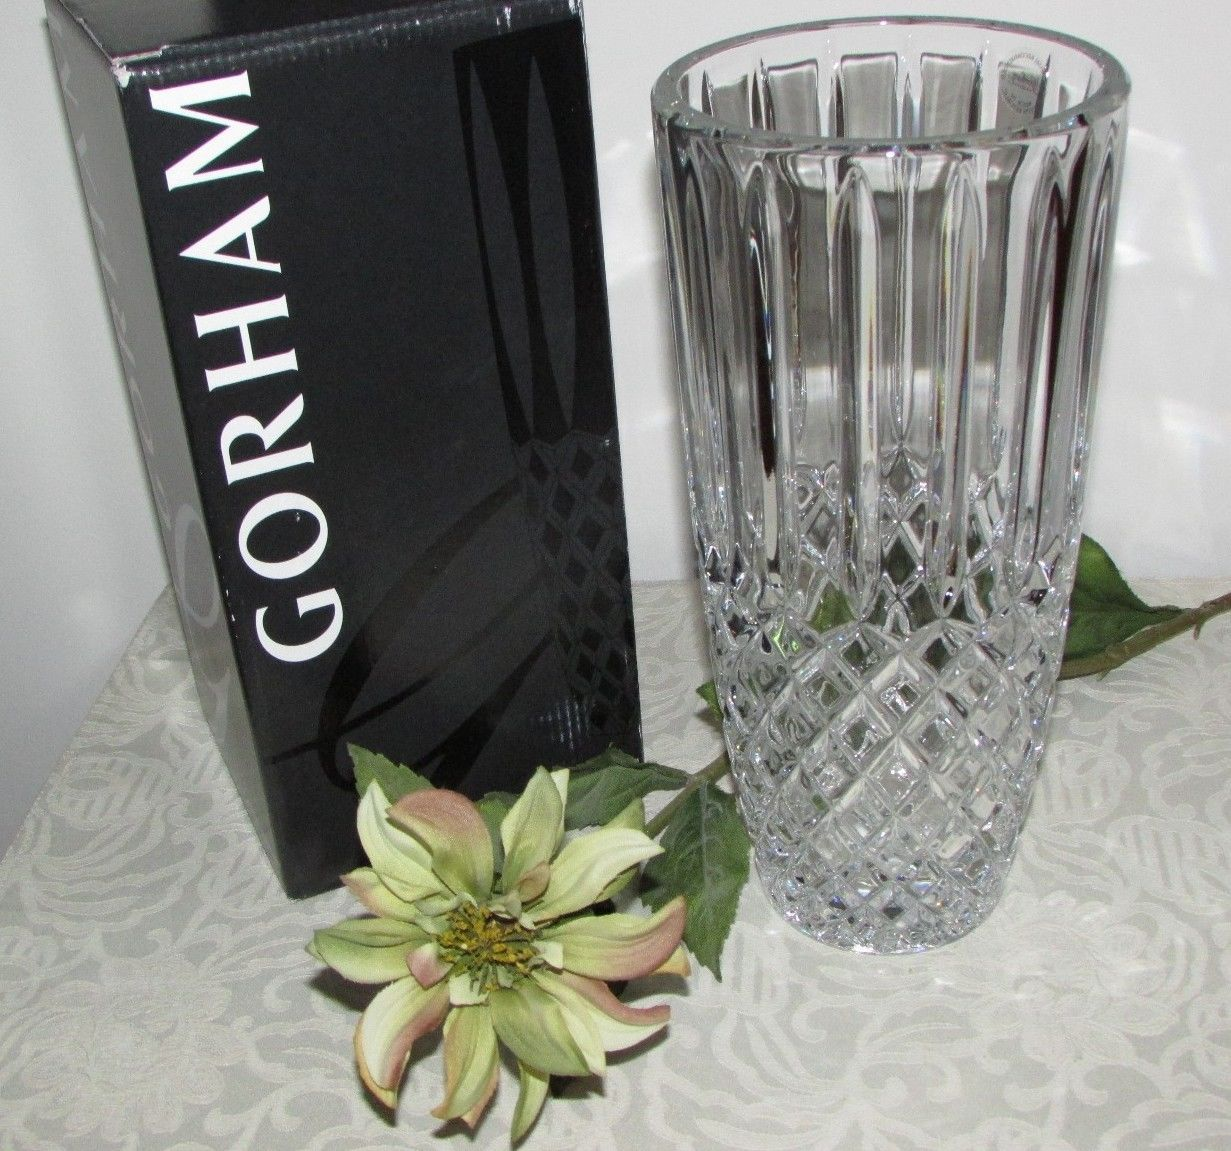 Gorham crystal lady anne 7 rose bowl vase new in box crystal lady anne 105 crystal vase by gorham 824832a brand new in gift box reviewsmspy